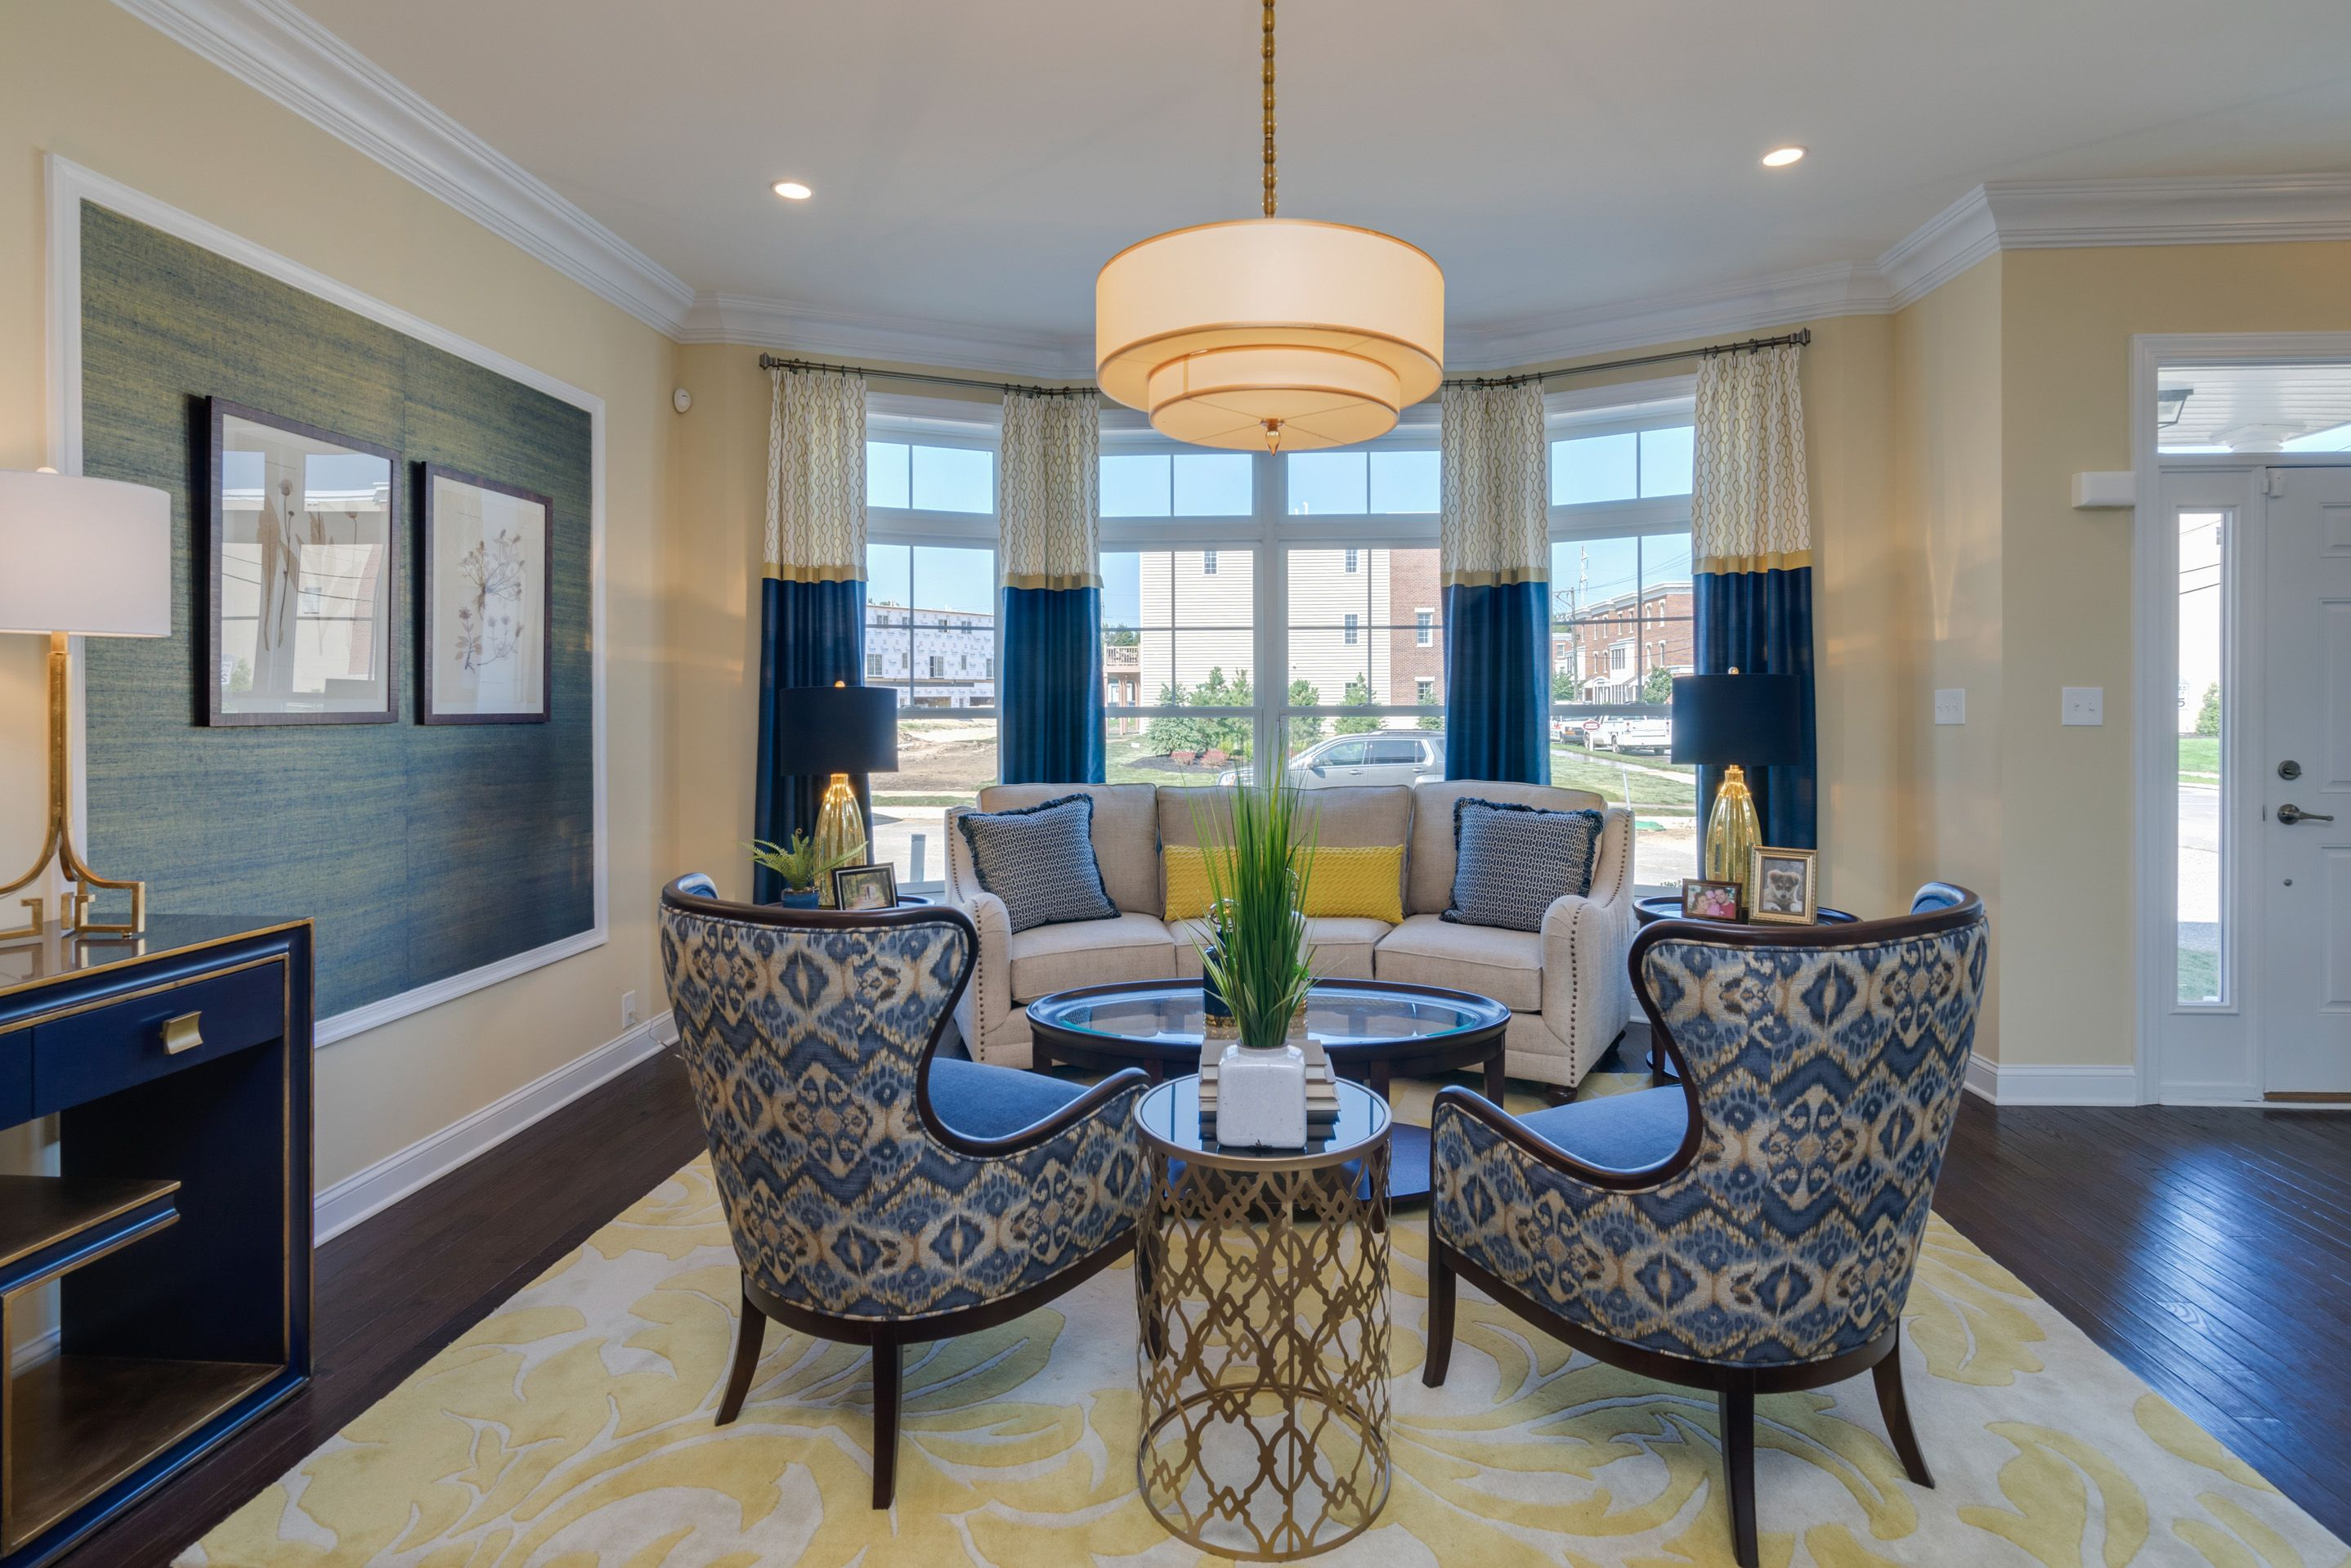 Living Area featured in the Gianna By Judd Builders and Developers in Philadelphia, PA